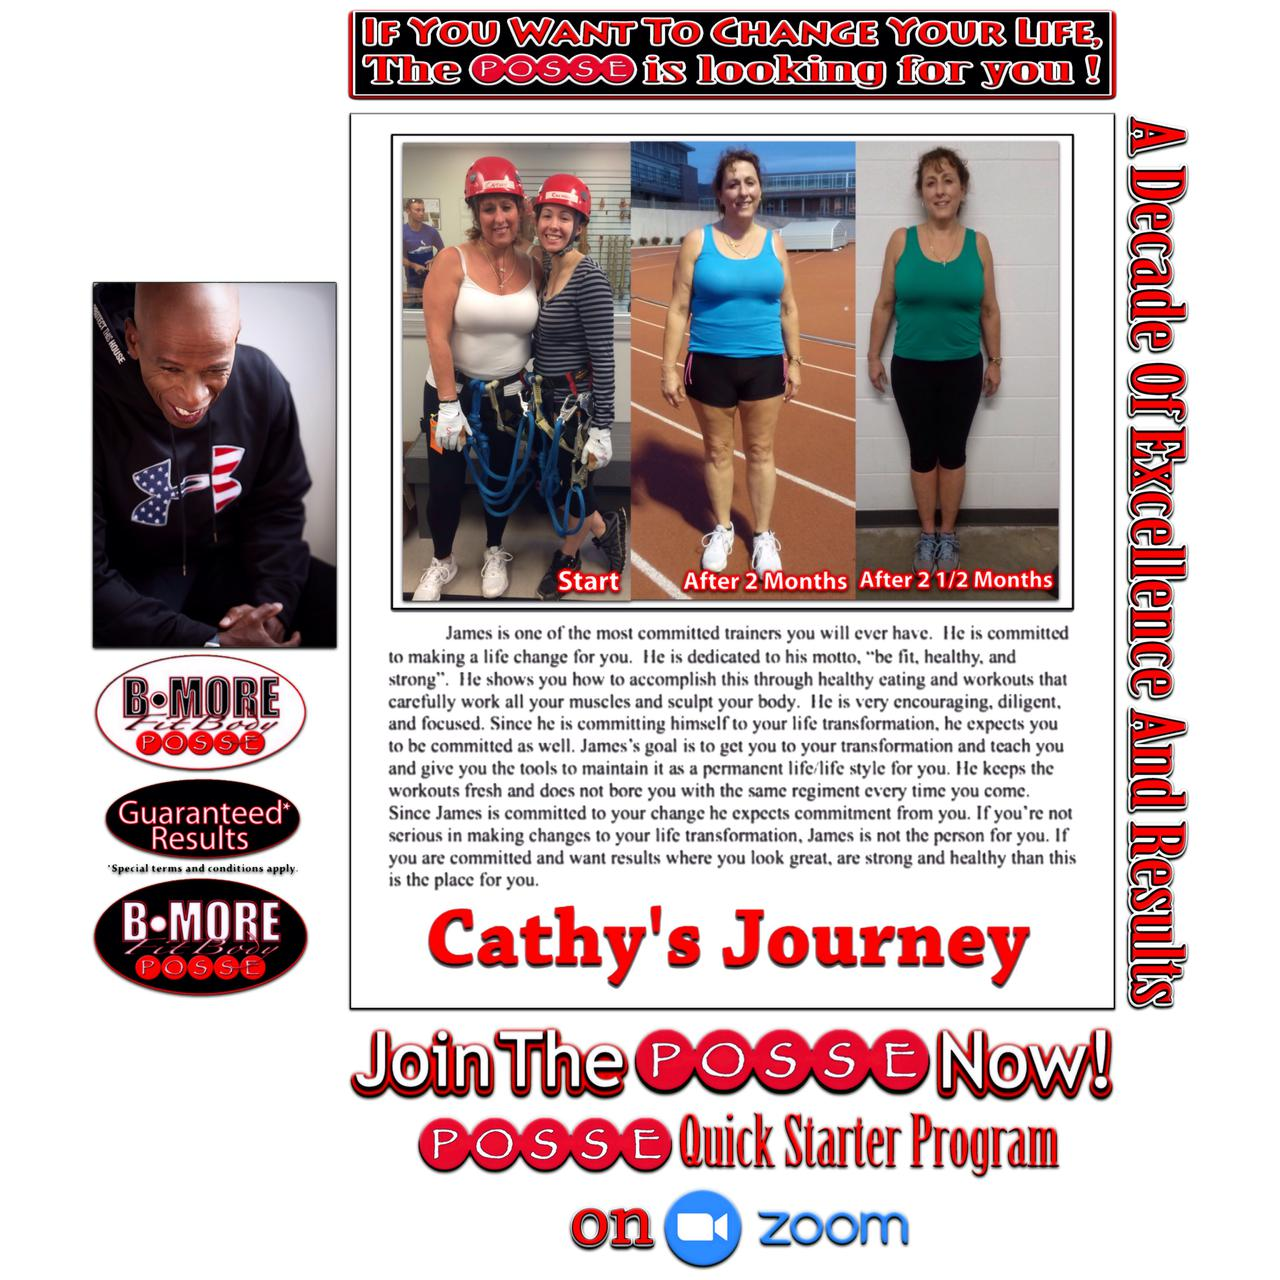 Personal fitness trainer for groups in Baltimore.